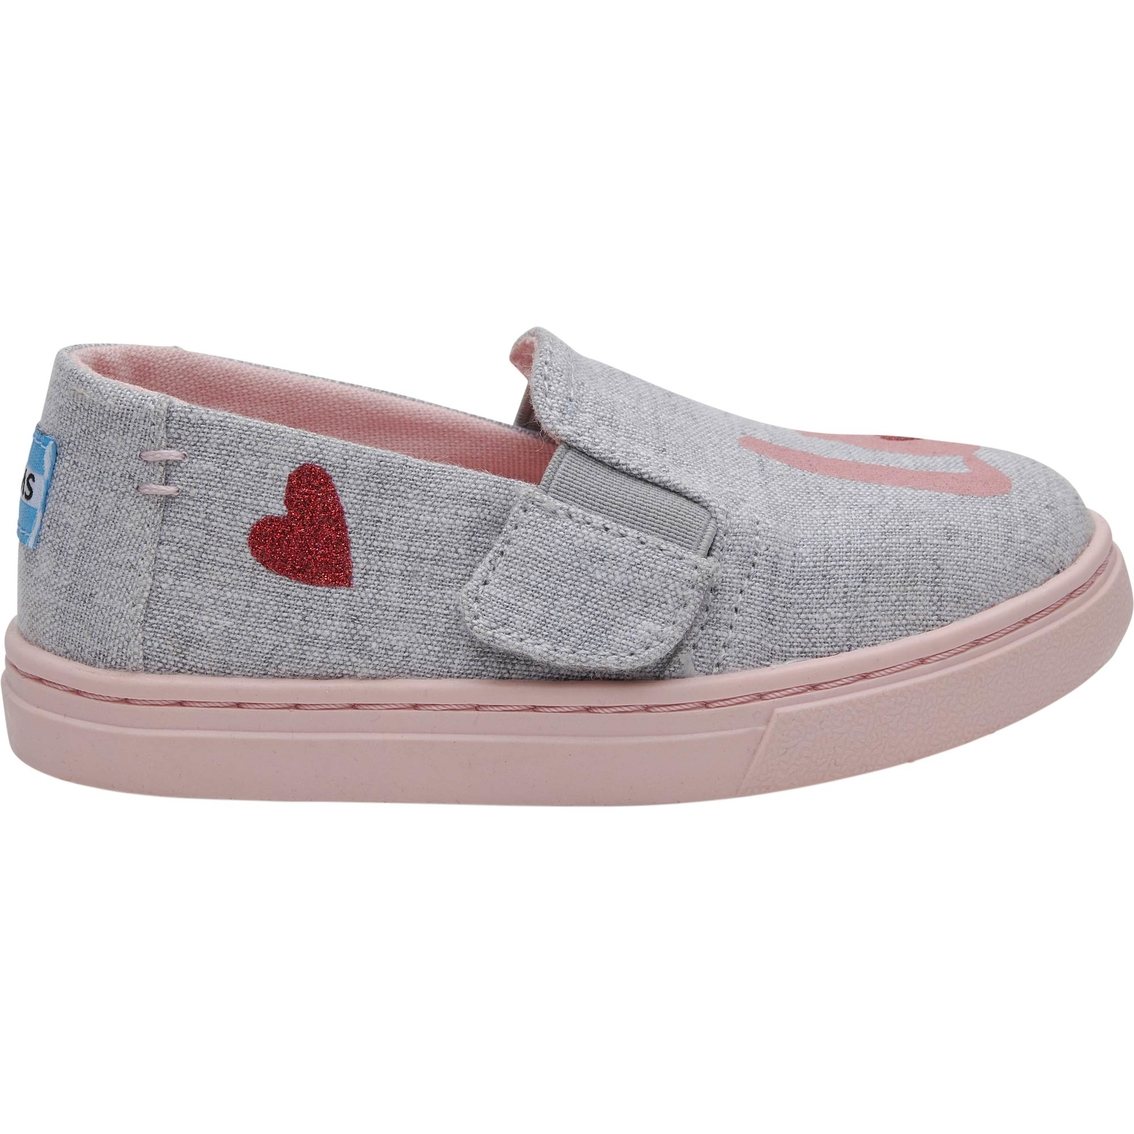 9cd5cd7943 Toms Girls Drizzle Love Tn Luca Slip On Shoes | Casual | Shoes ...